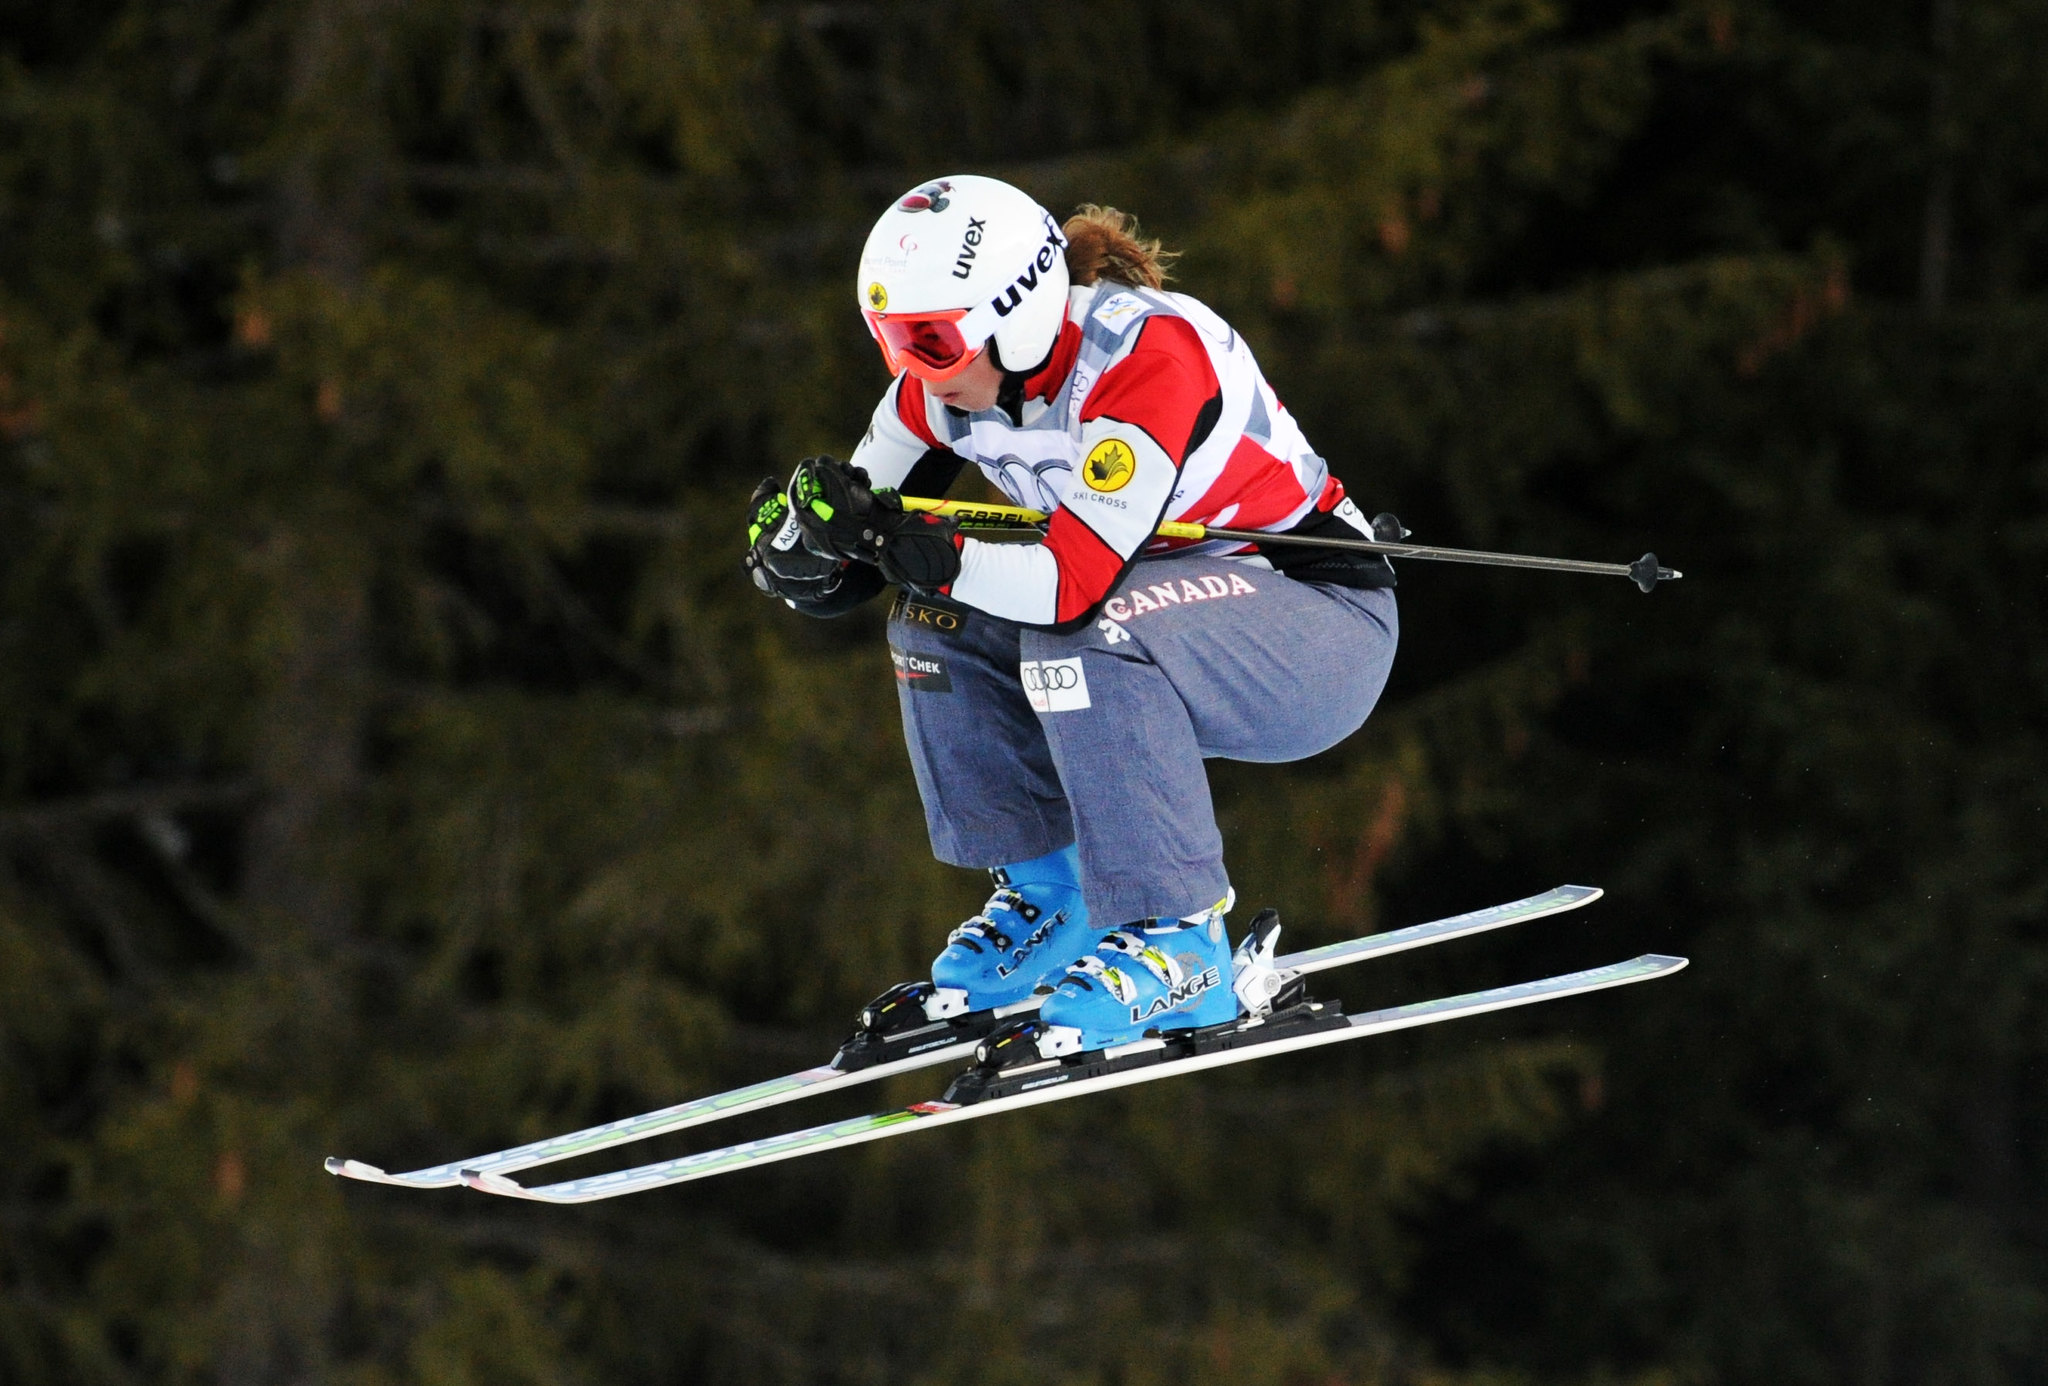 Danielle Sundquist in a qualifying run at the ski cross World Cup in Innichen/San Candido, Italy.